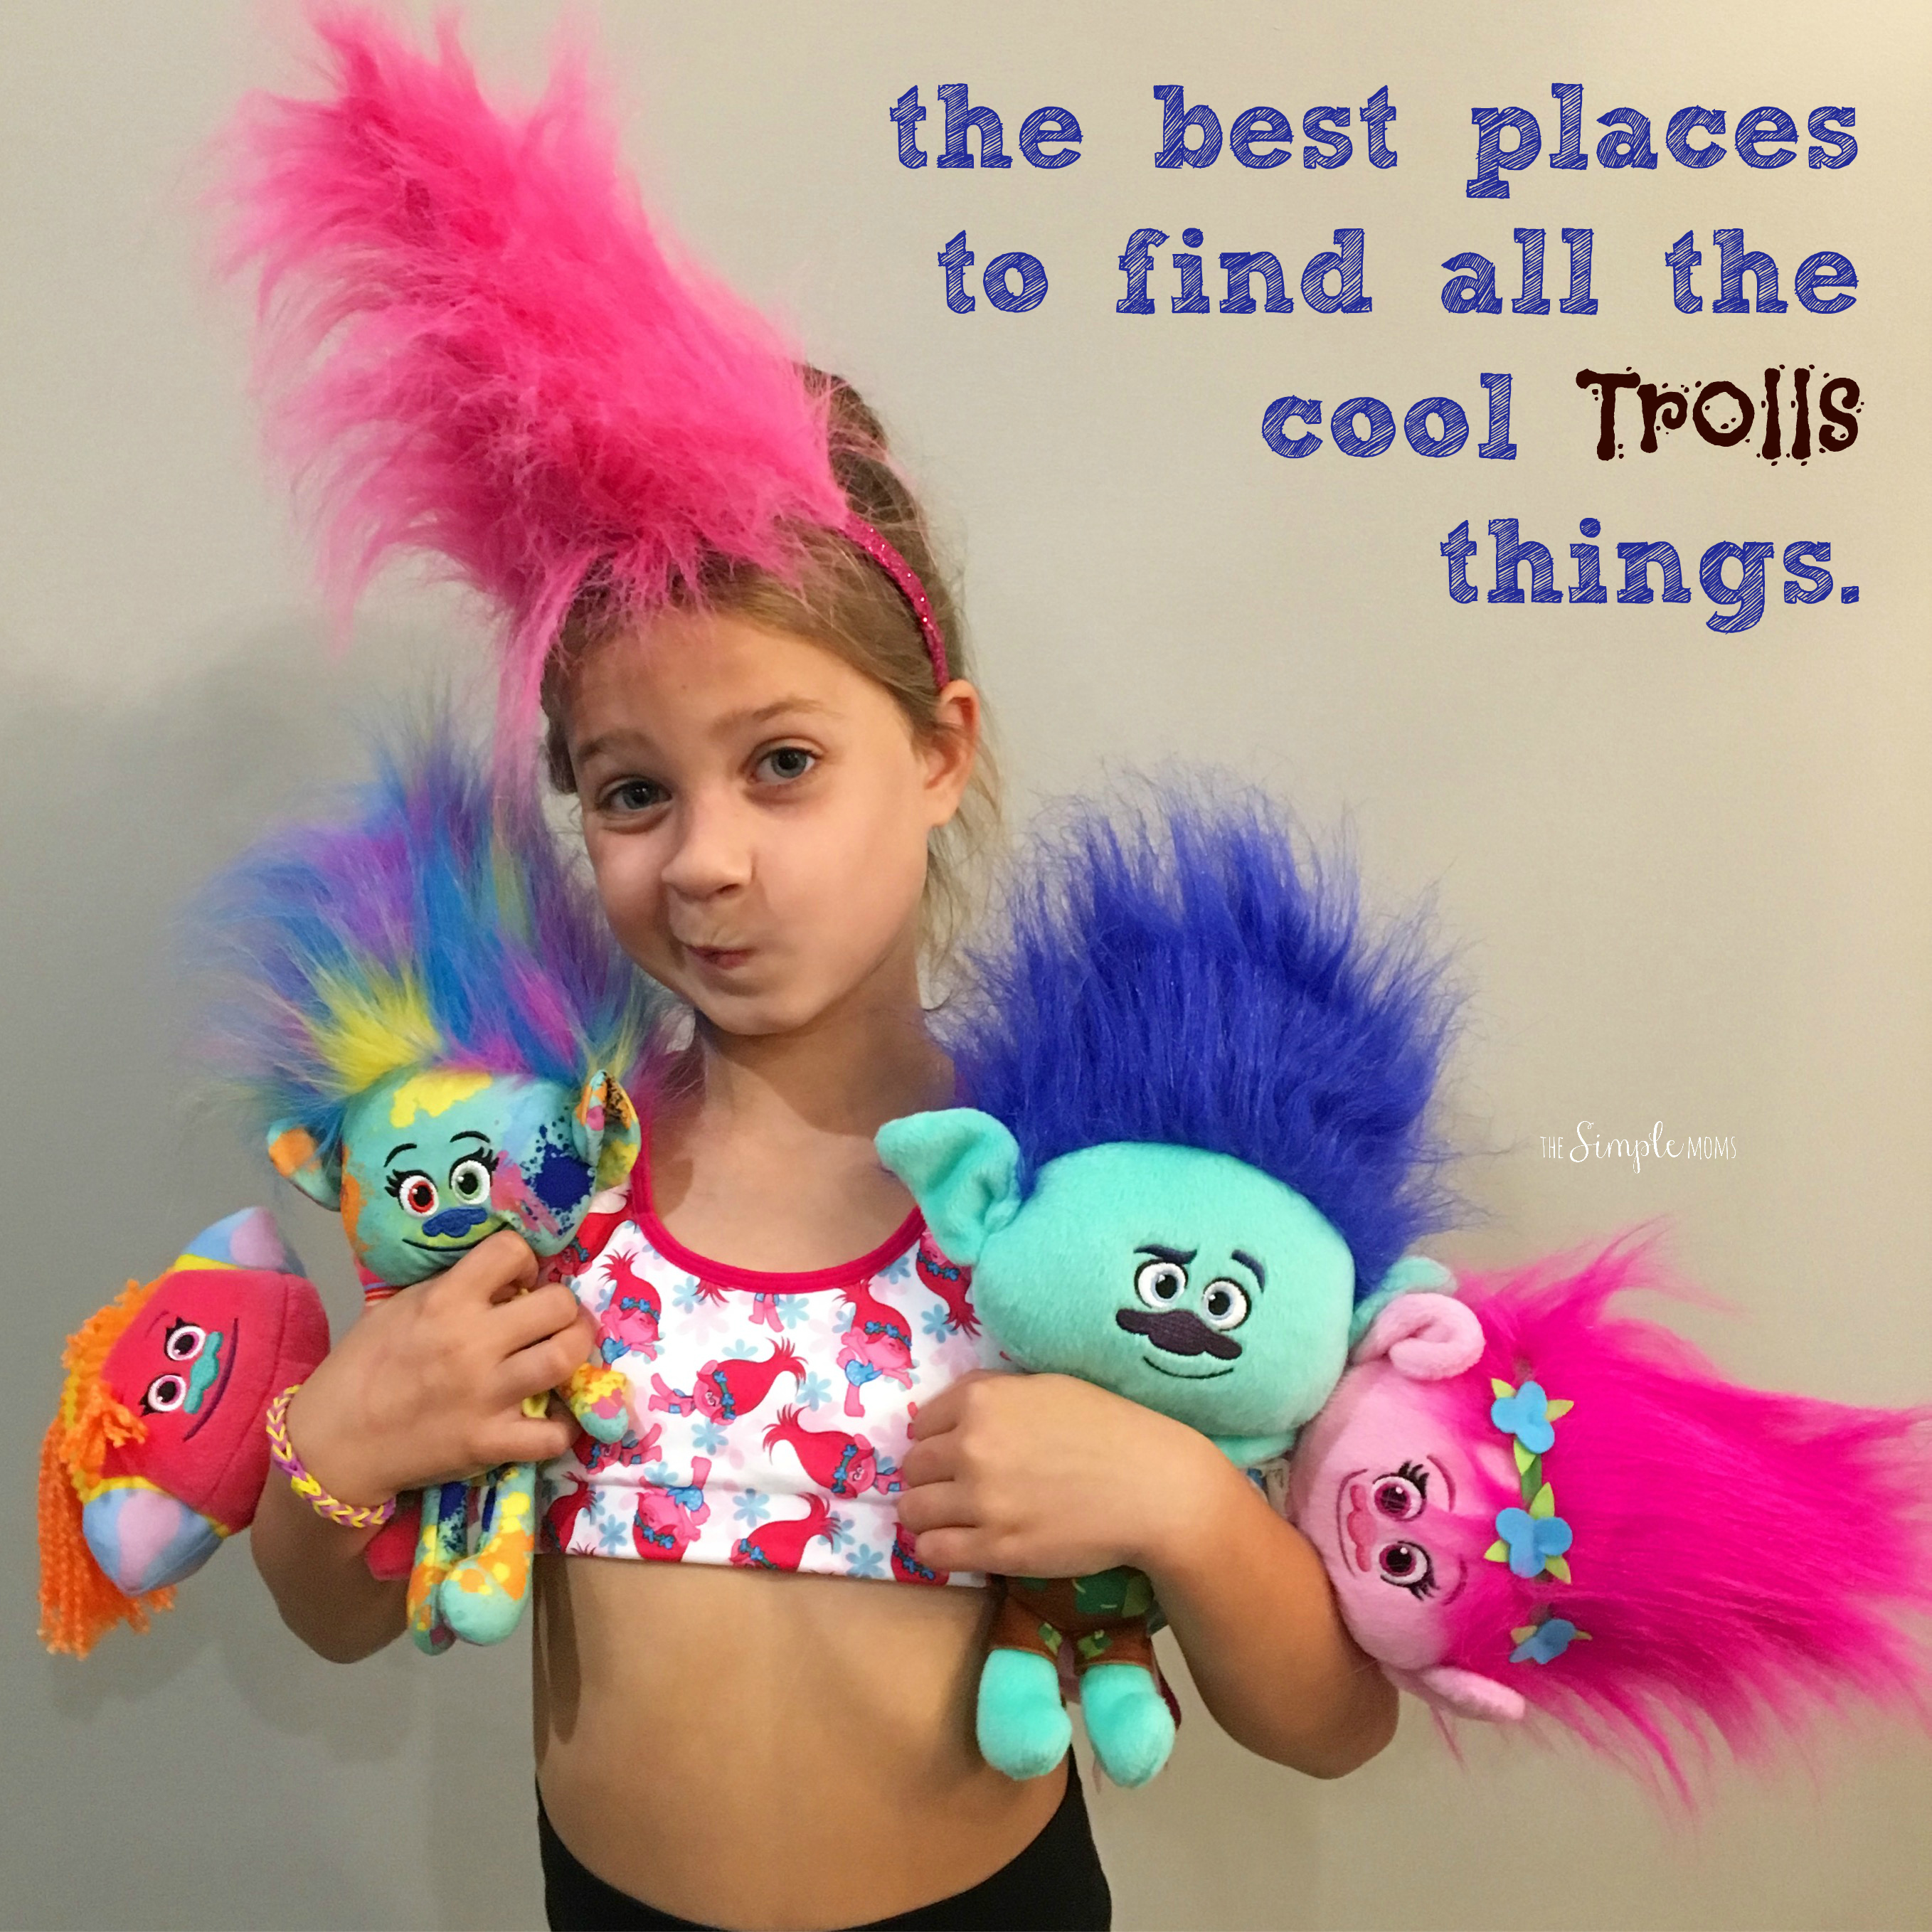 the-best-places-to-find-all-the-trolls-things